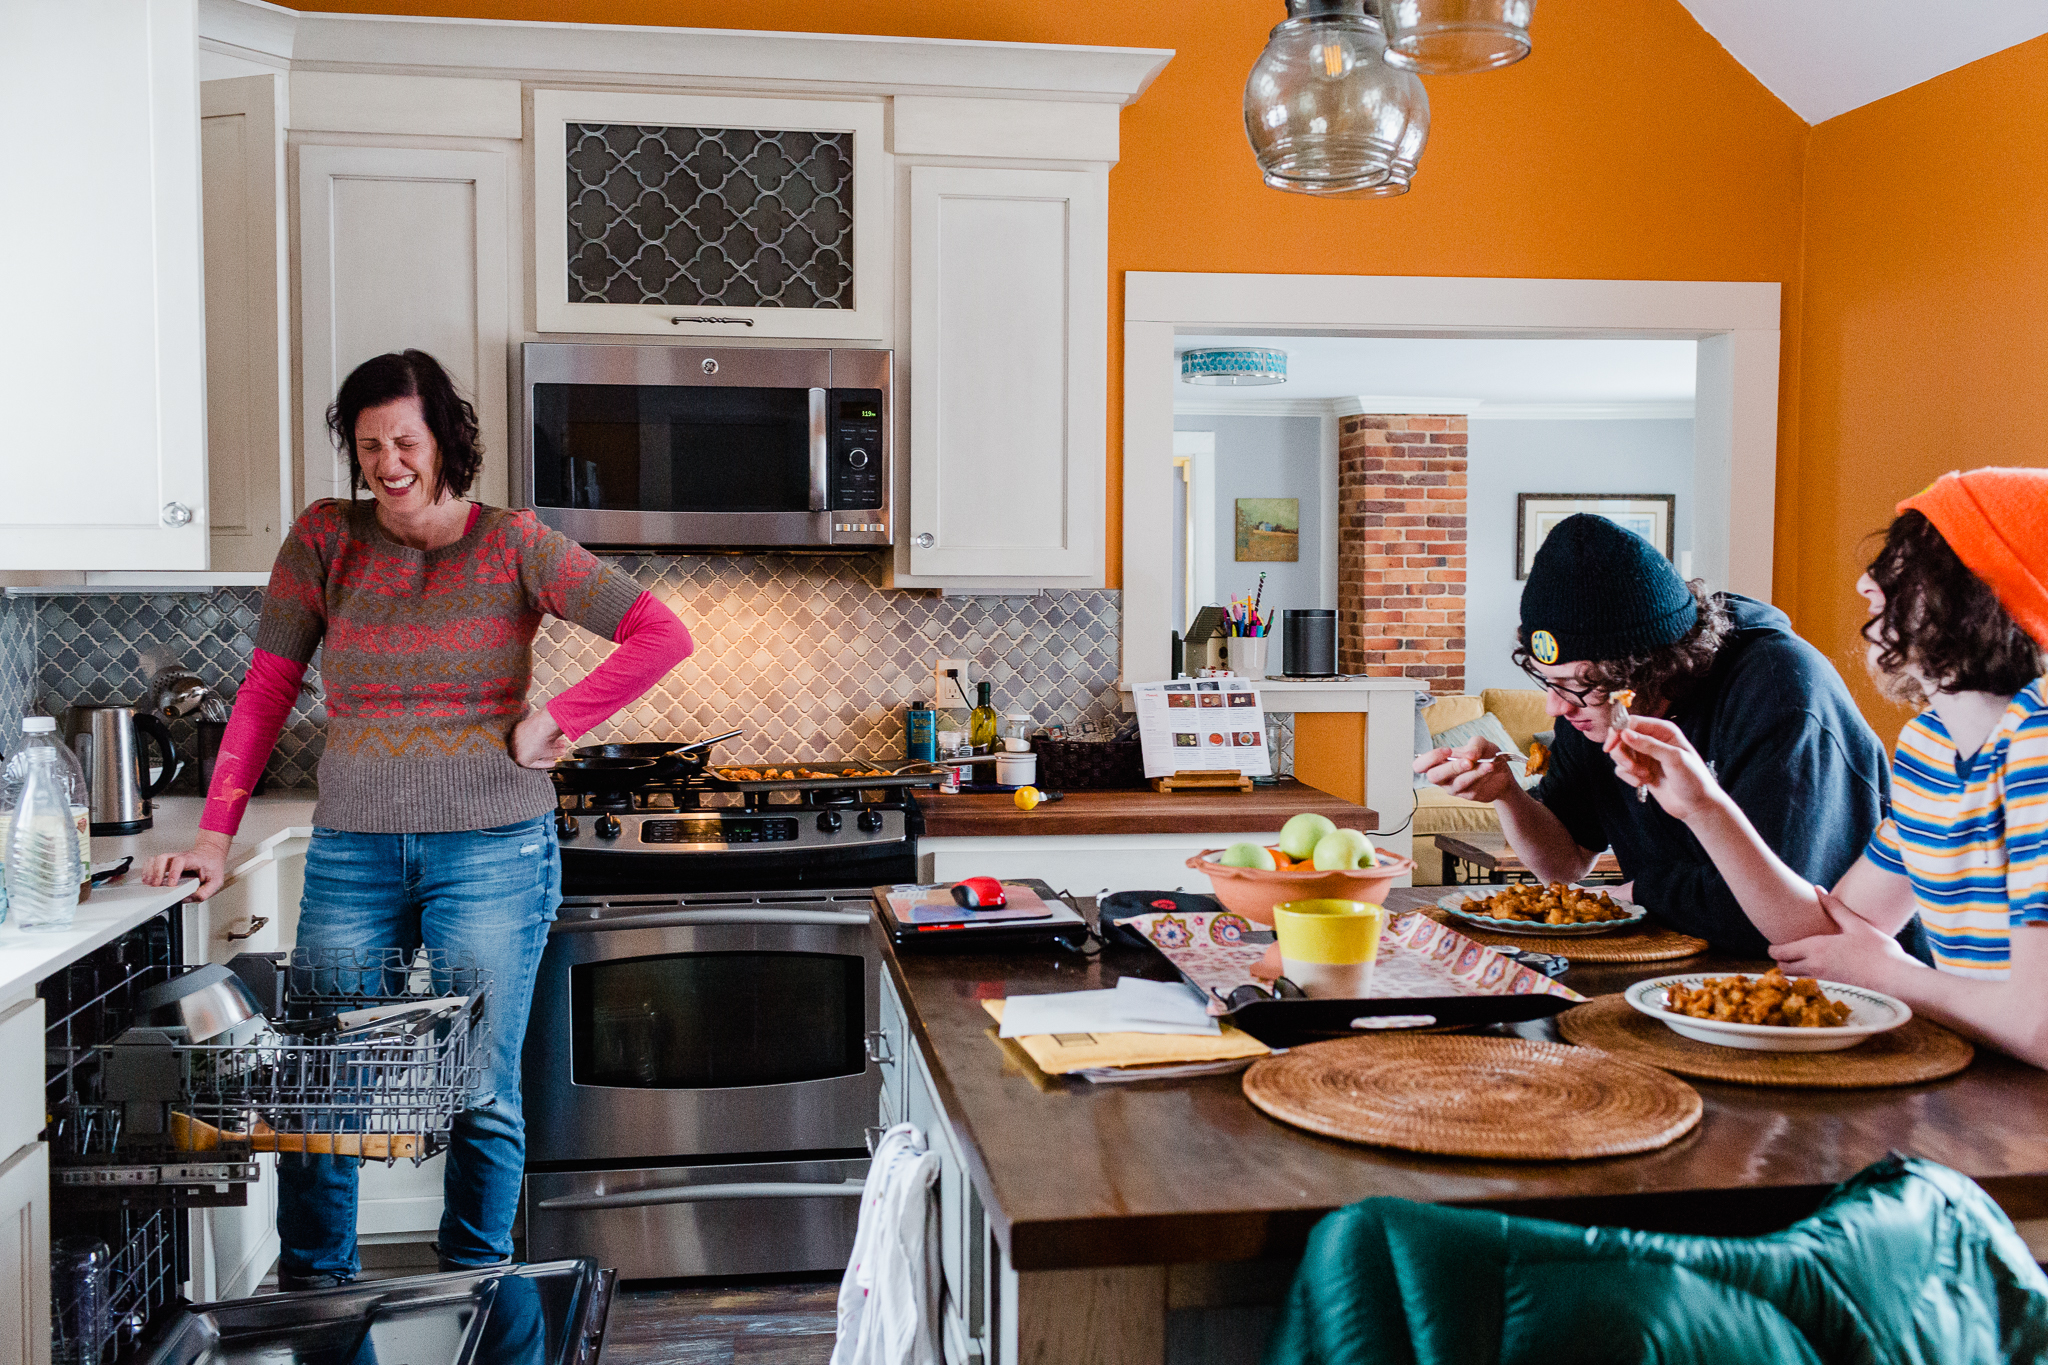 mom standing in kitchen laughing while sons eat at counter